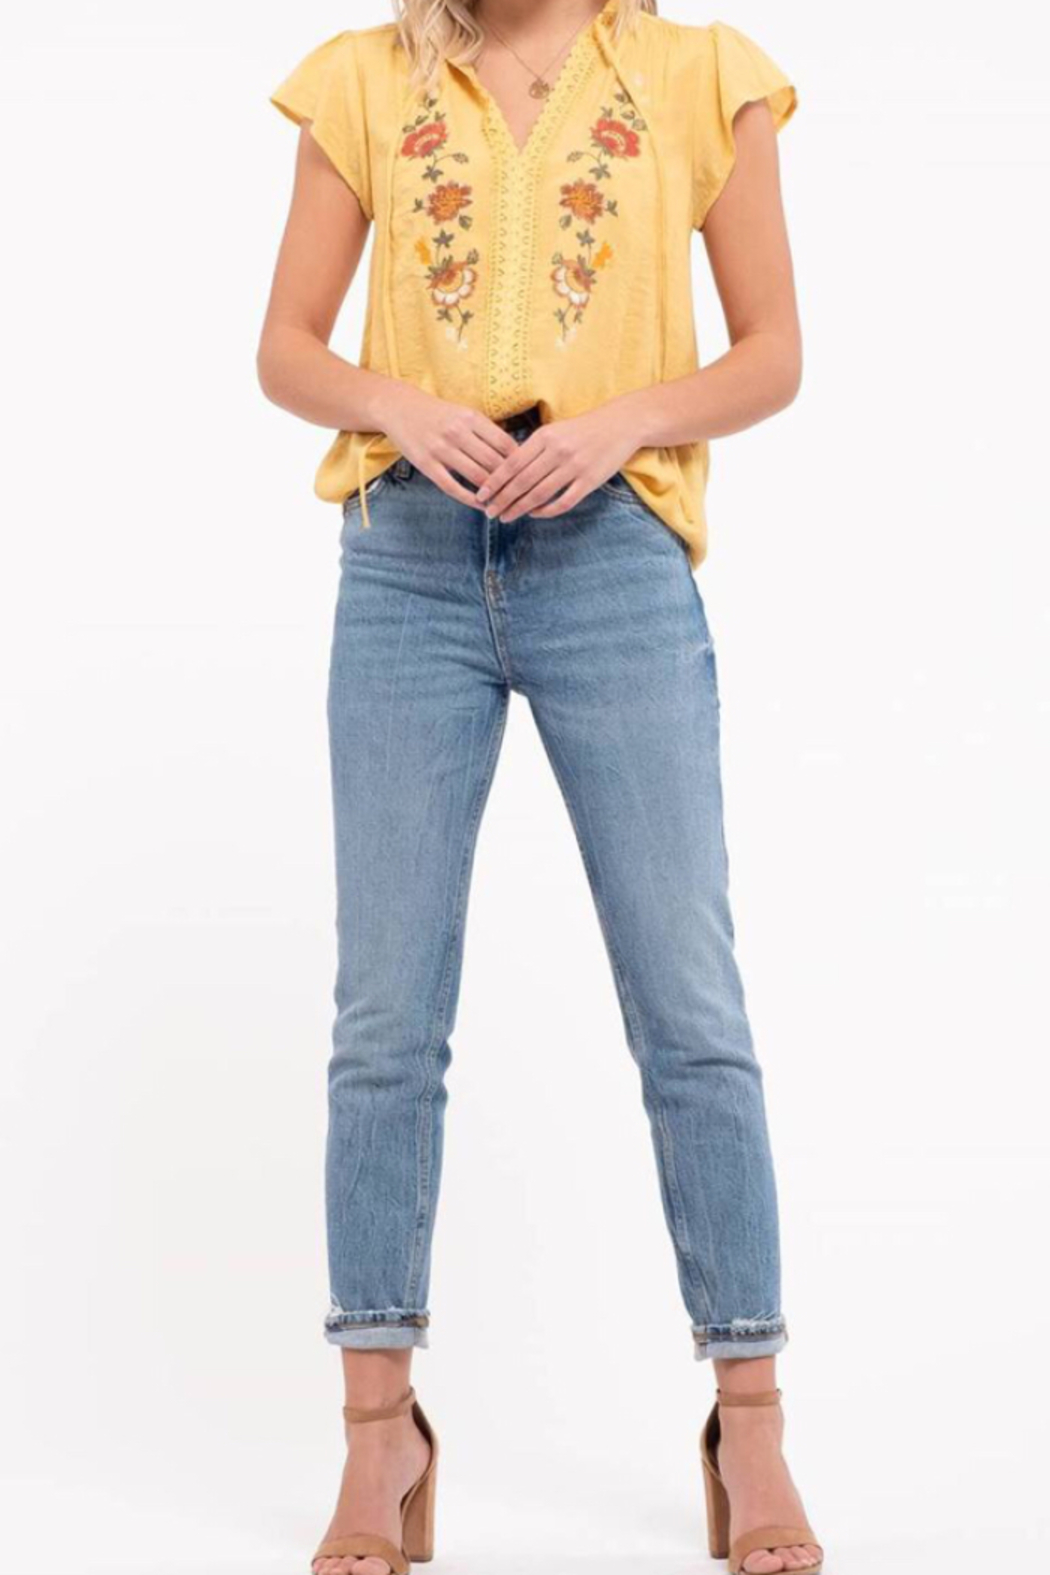 blu Pepper  Embroidered Floral Top - Back Cropped Image